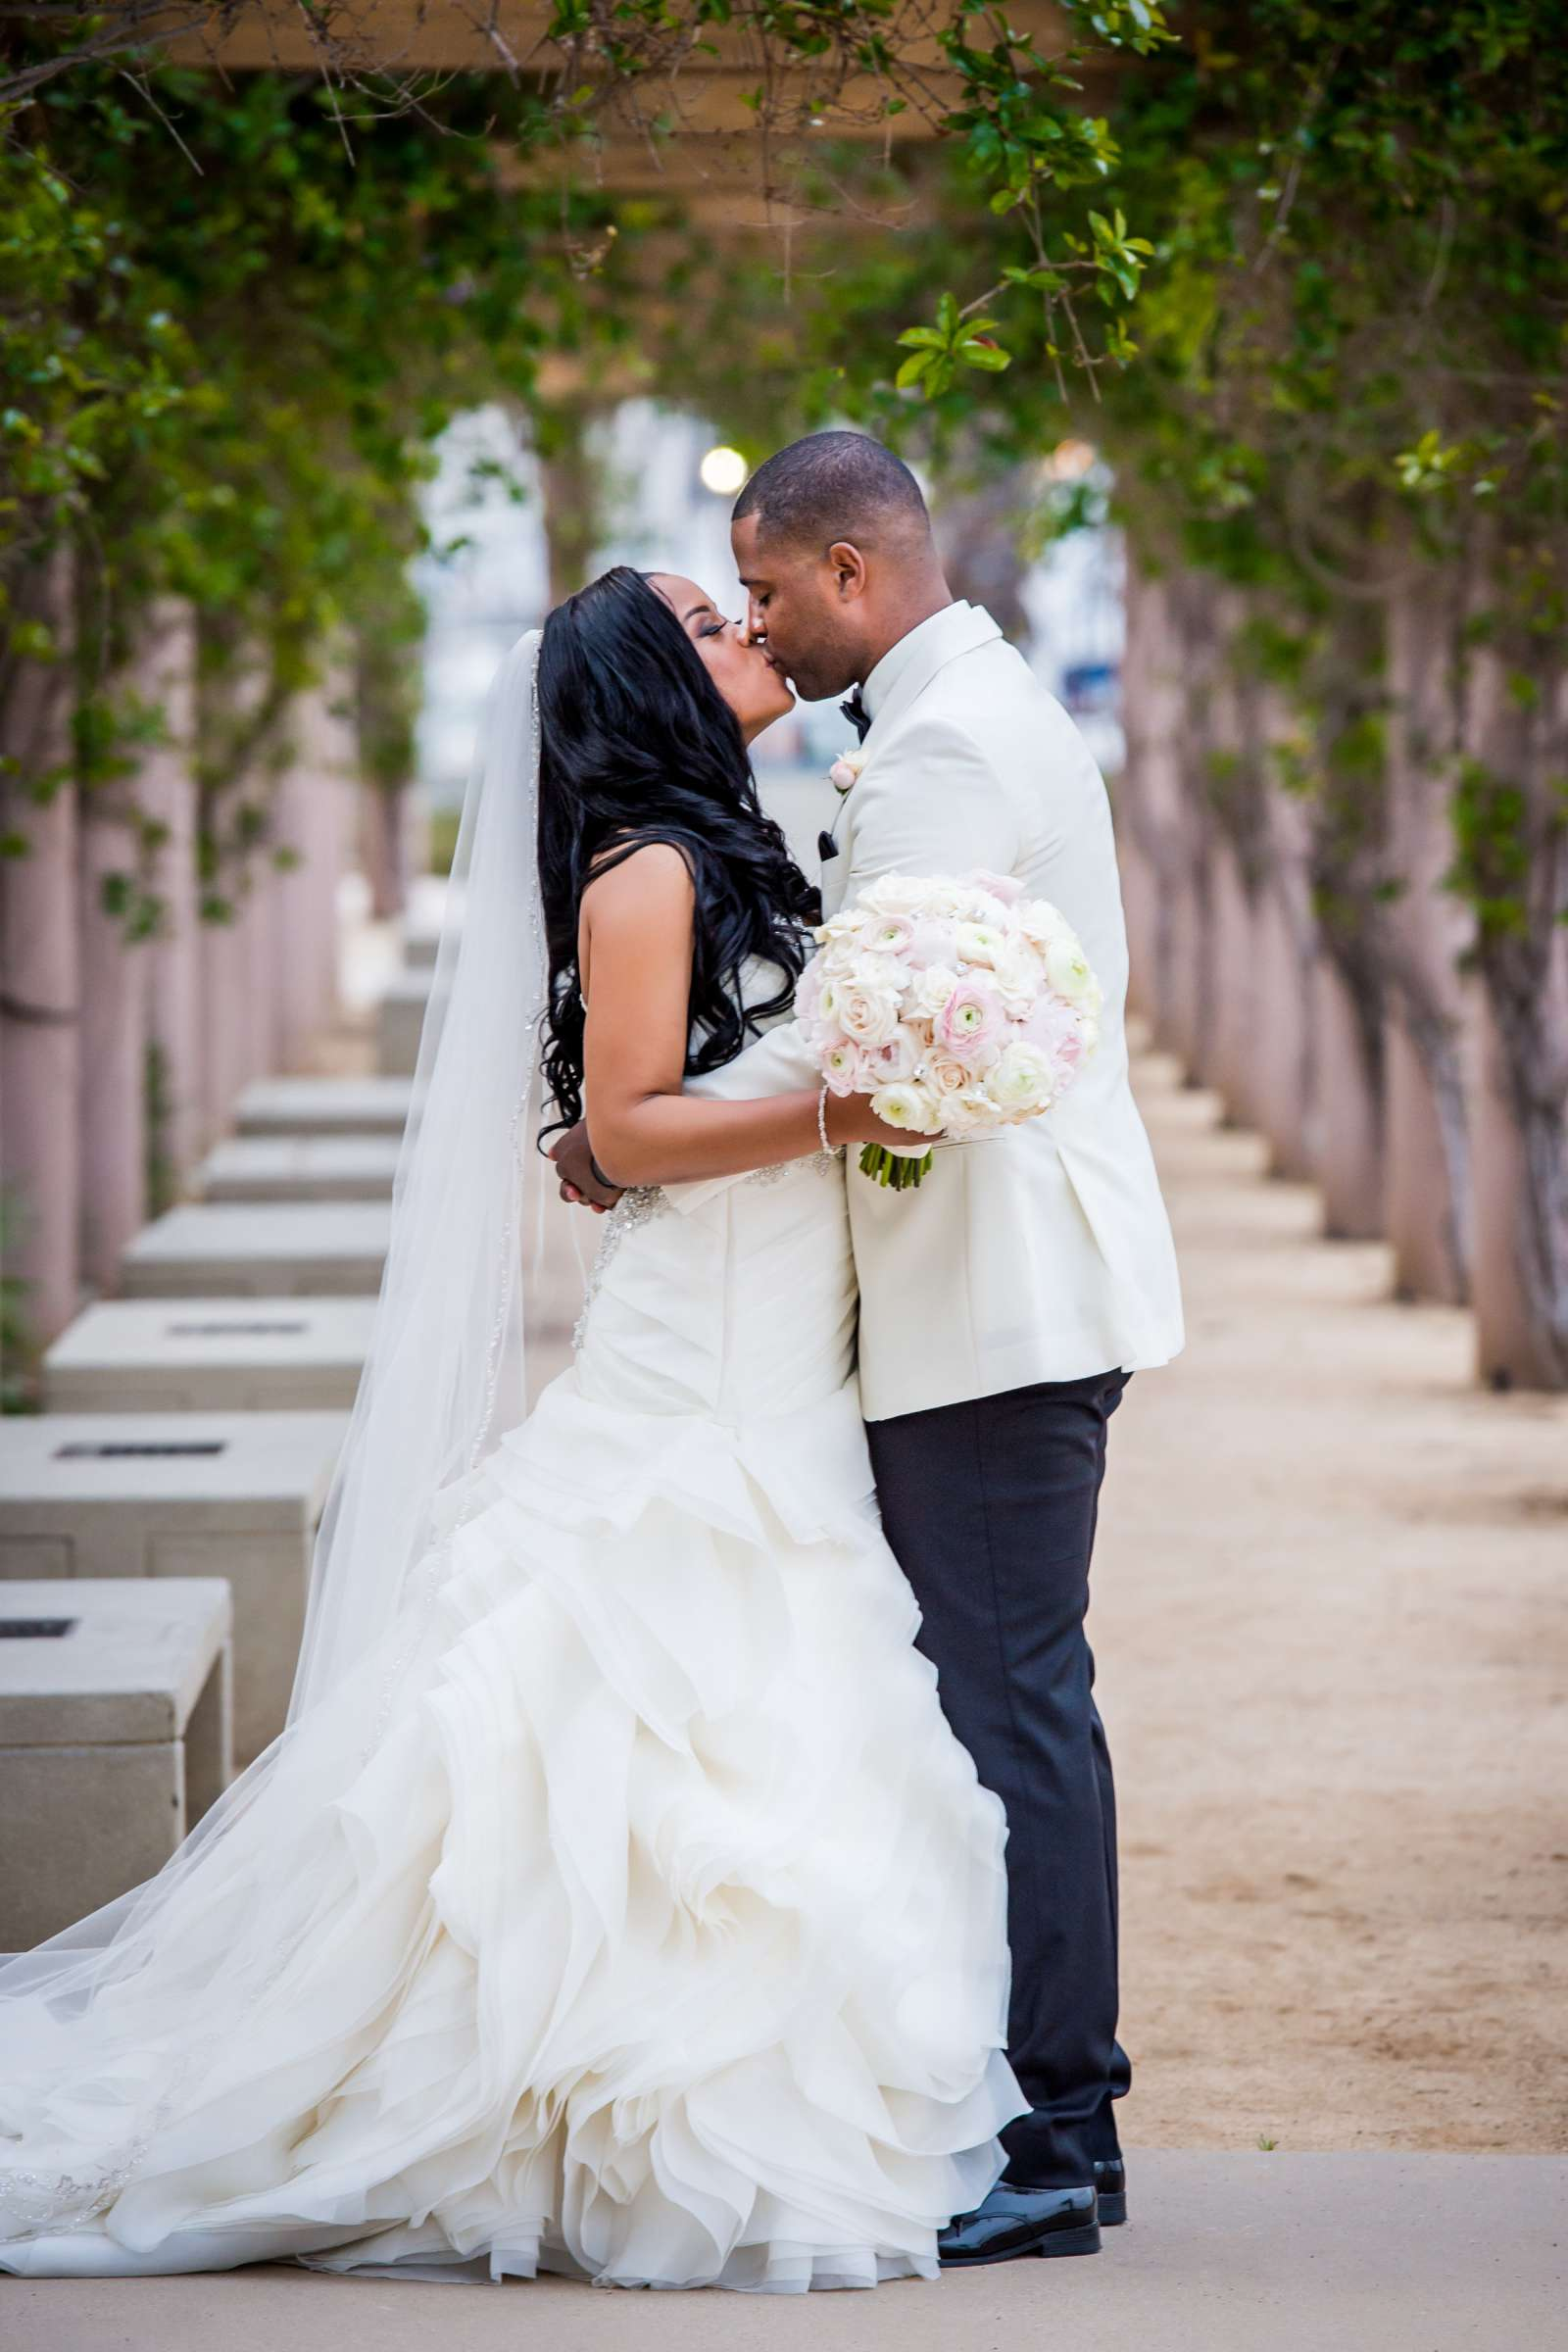 Coronado Community Center Wedding coordinated by First Comes Love Weddings & Events, Nikia and Charles Wedding Photo #2 by True Photography